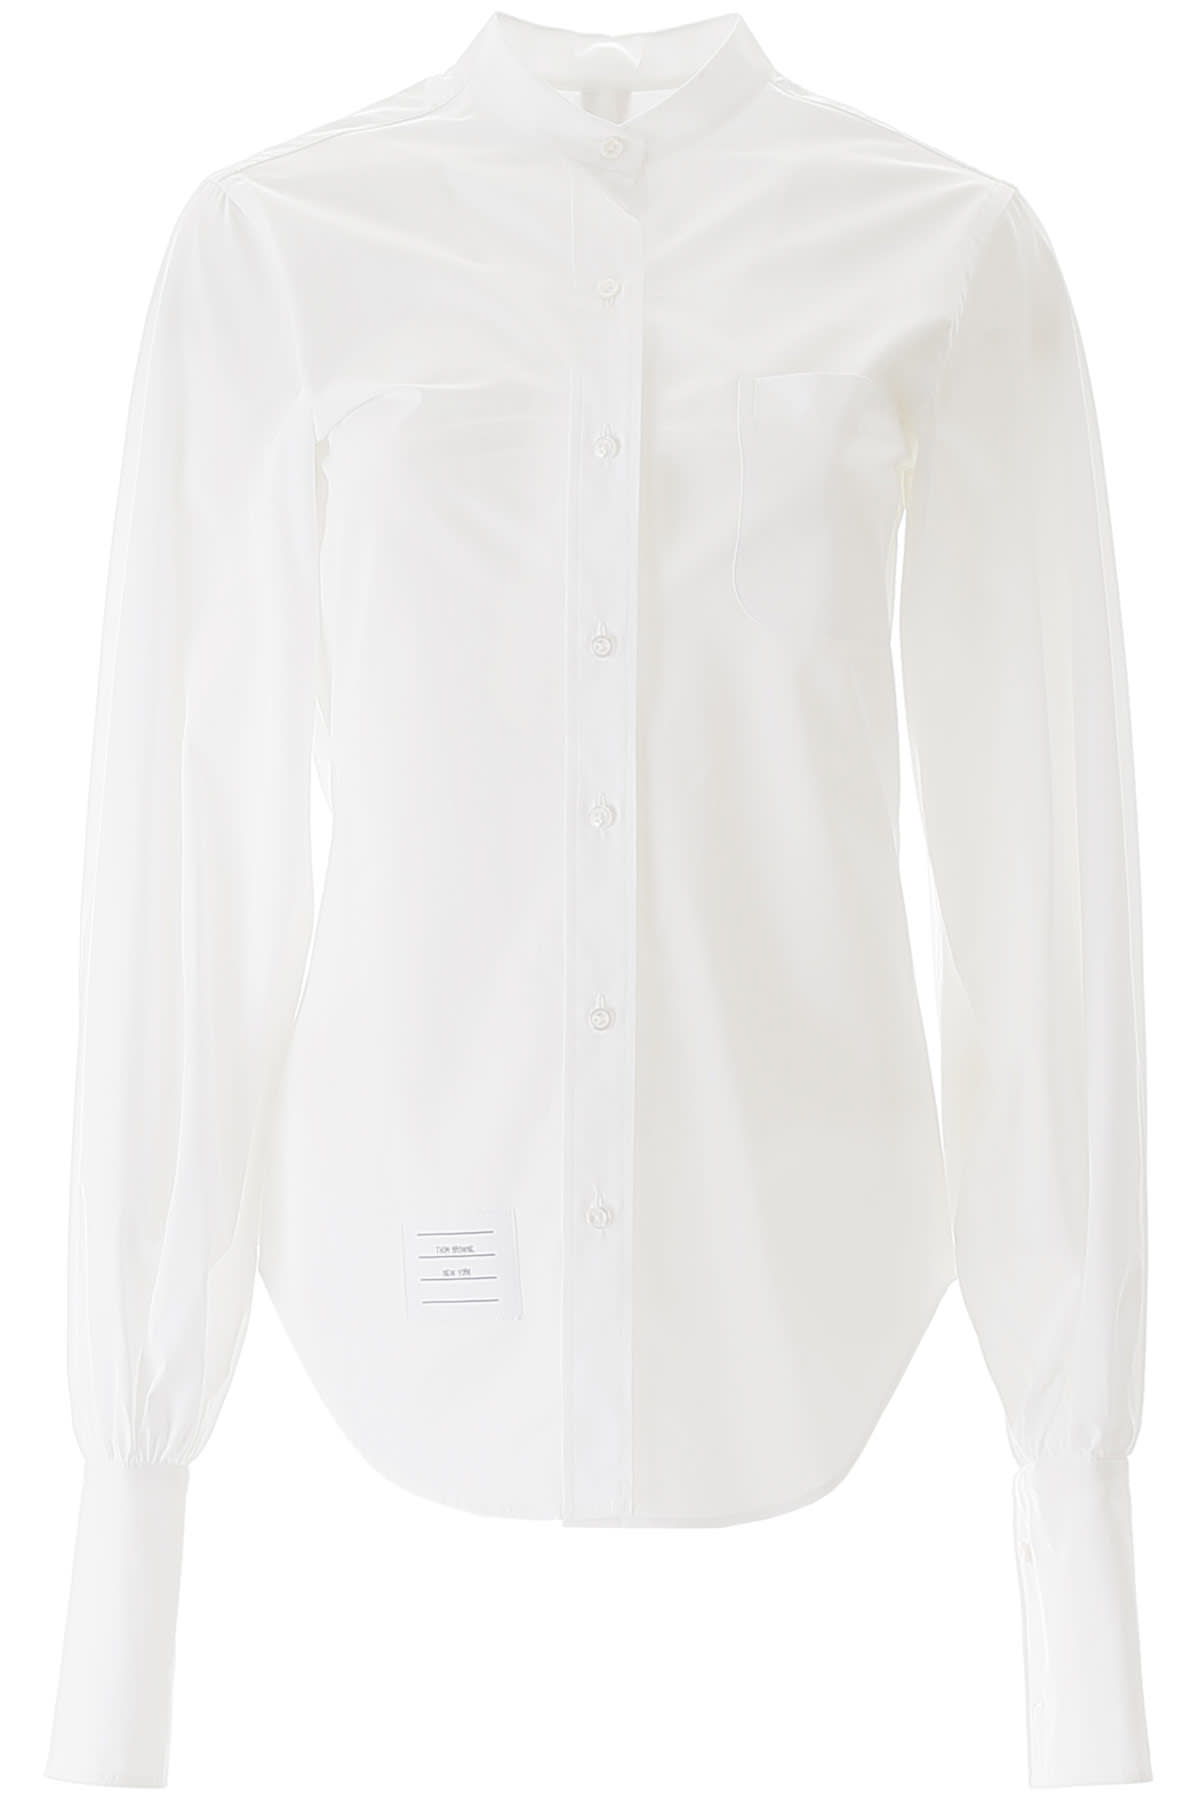 Thom Browne Mandarin Collar Shirt